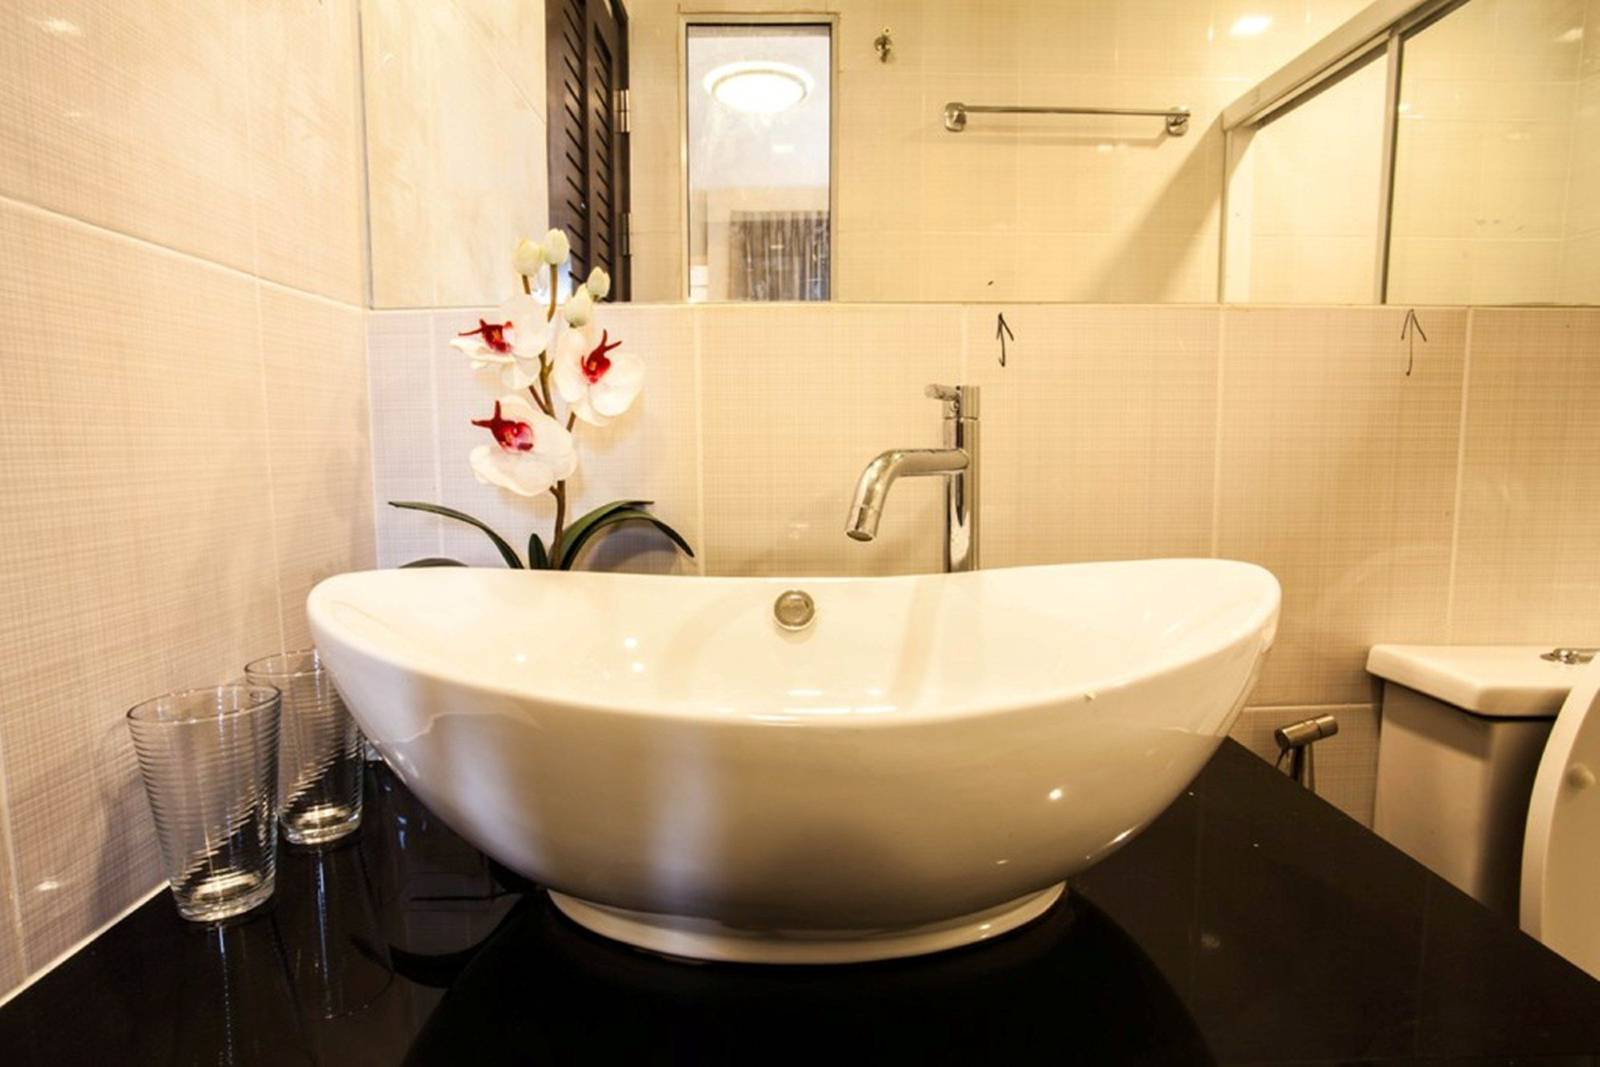 retirement and the relationship with your spouse: part 2  -  small washroom sink